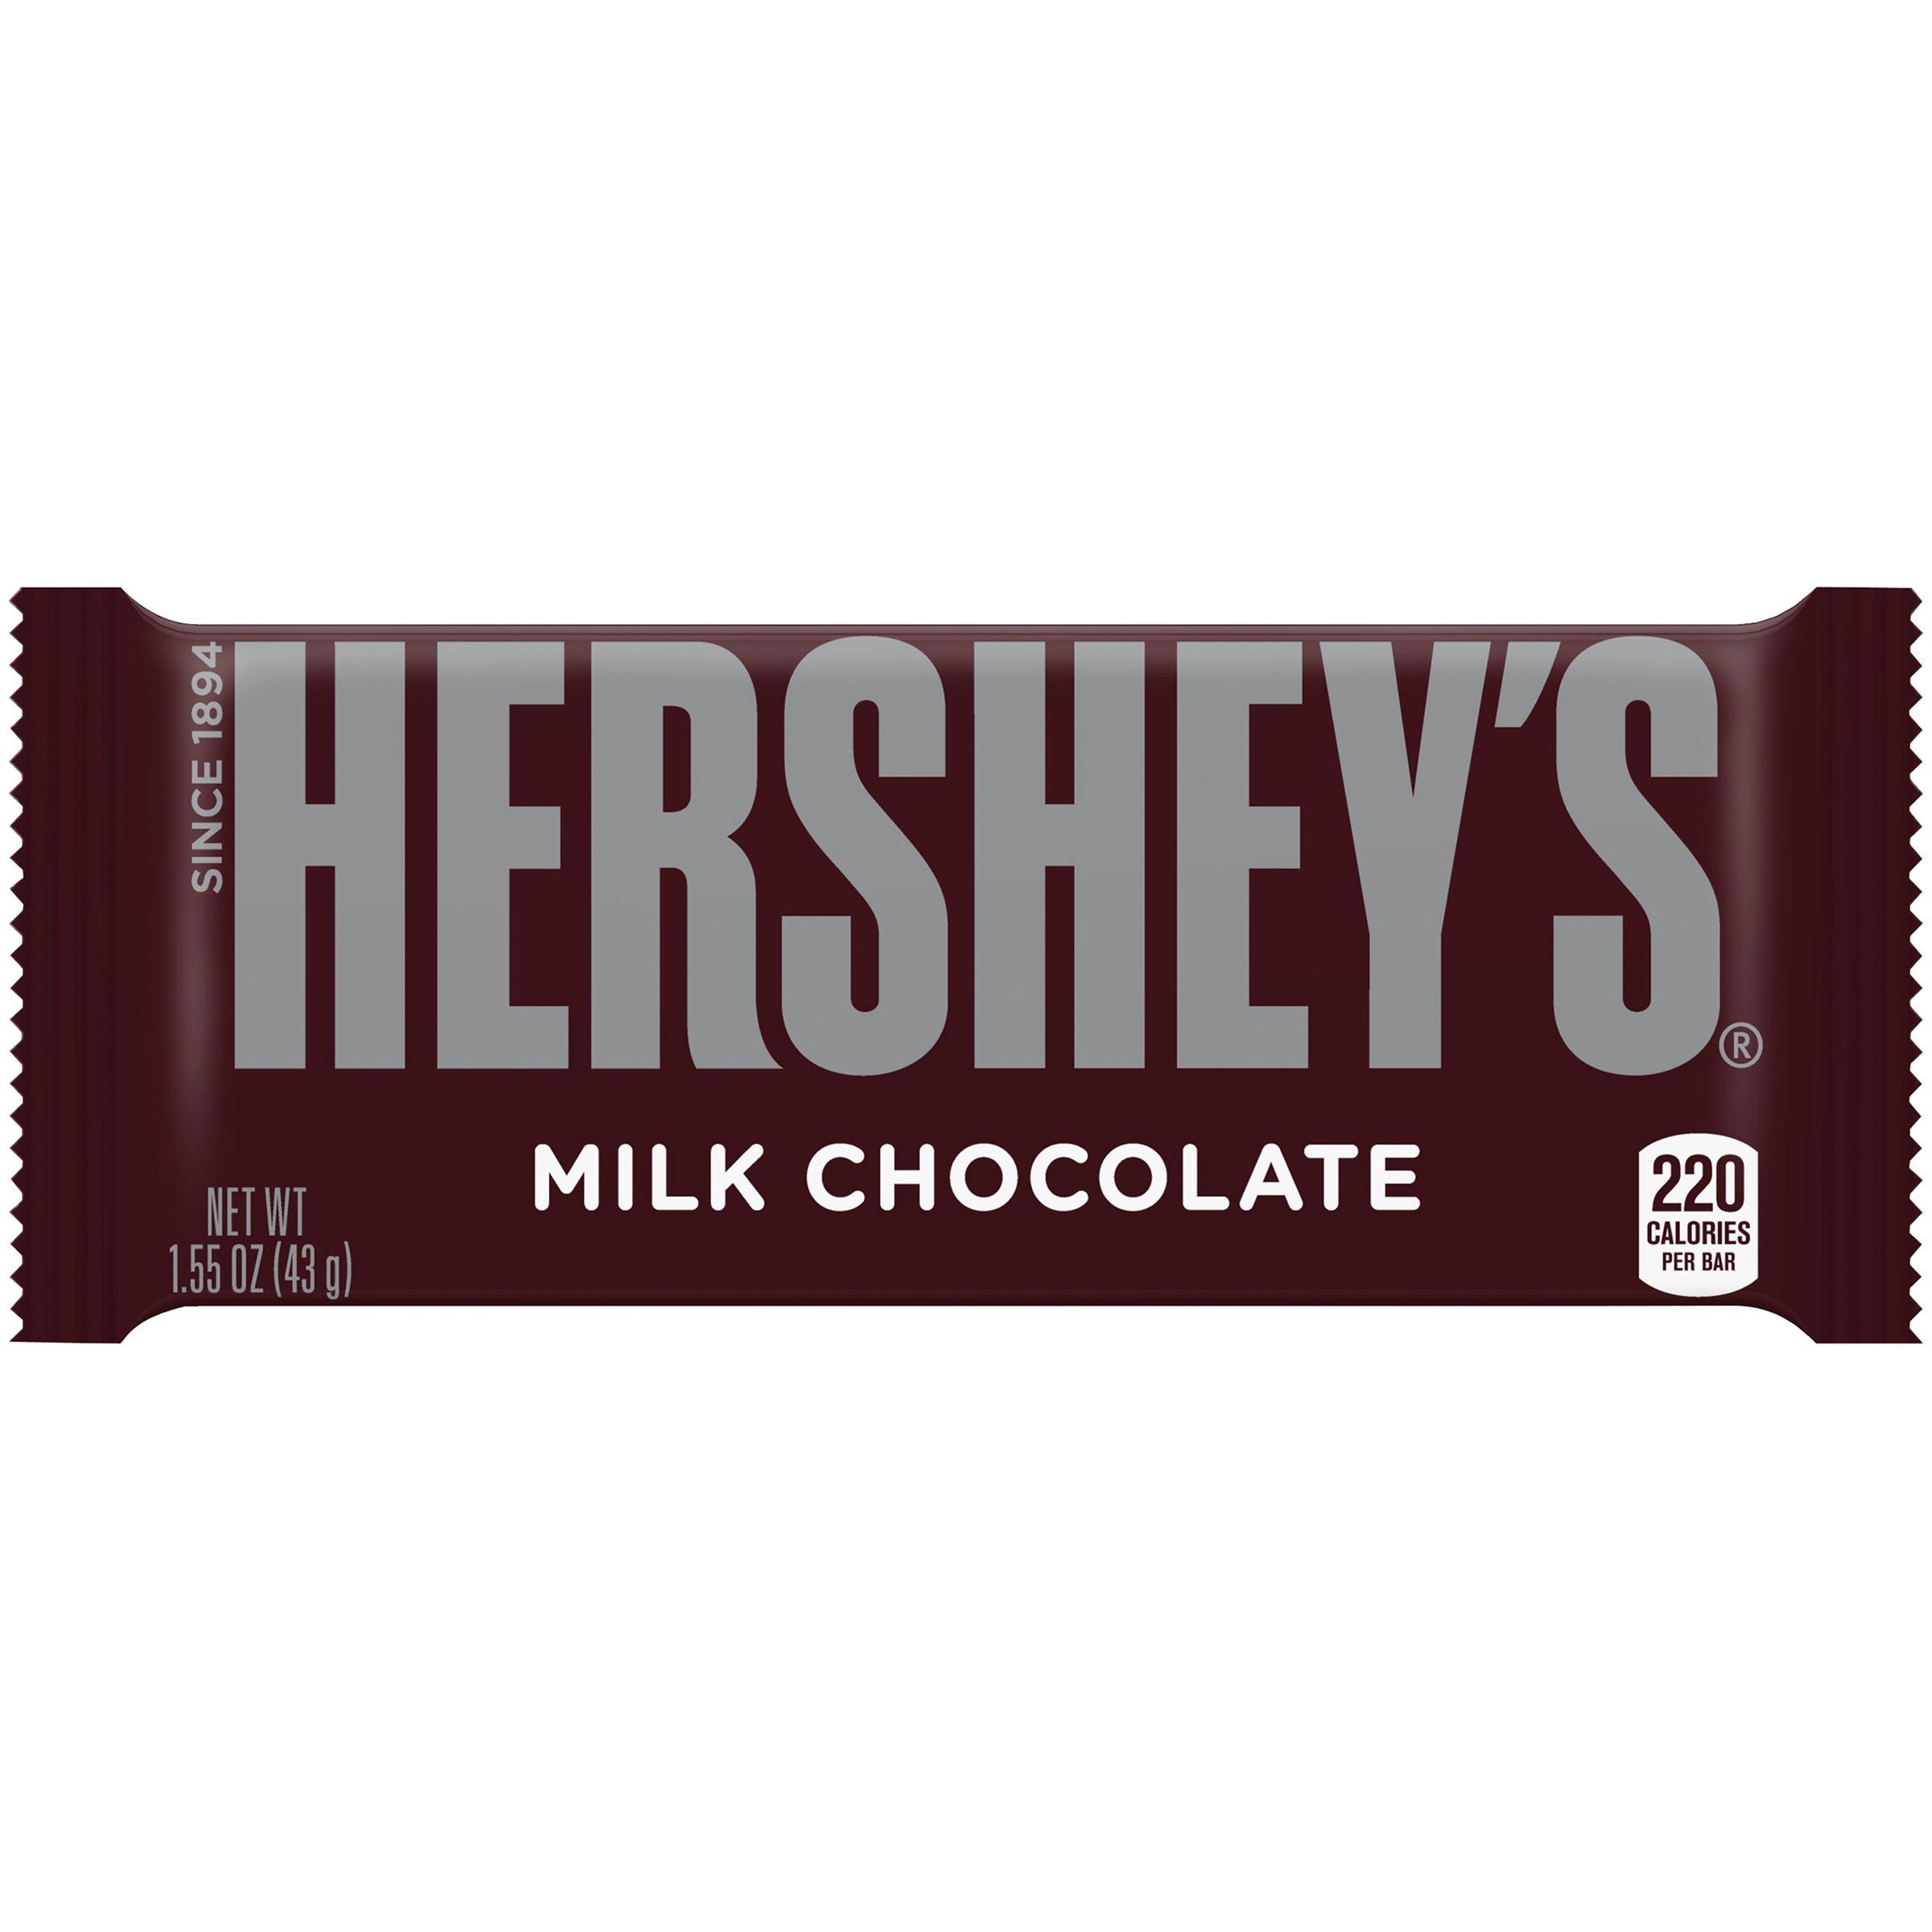 HERSHEY'S Milk Chocolate Bar, 1.55 oz